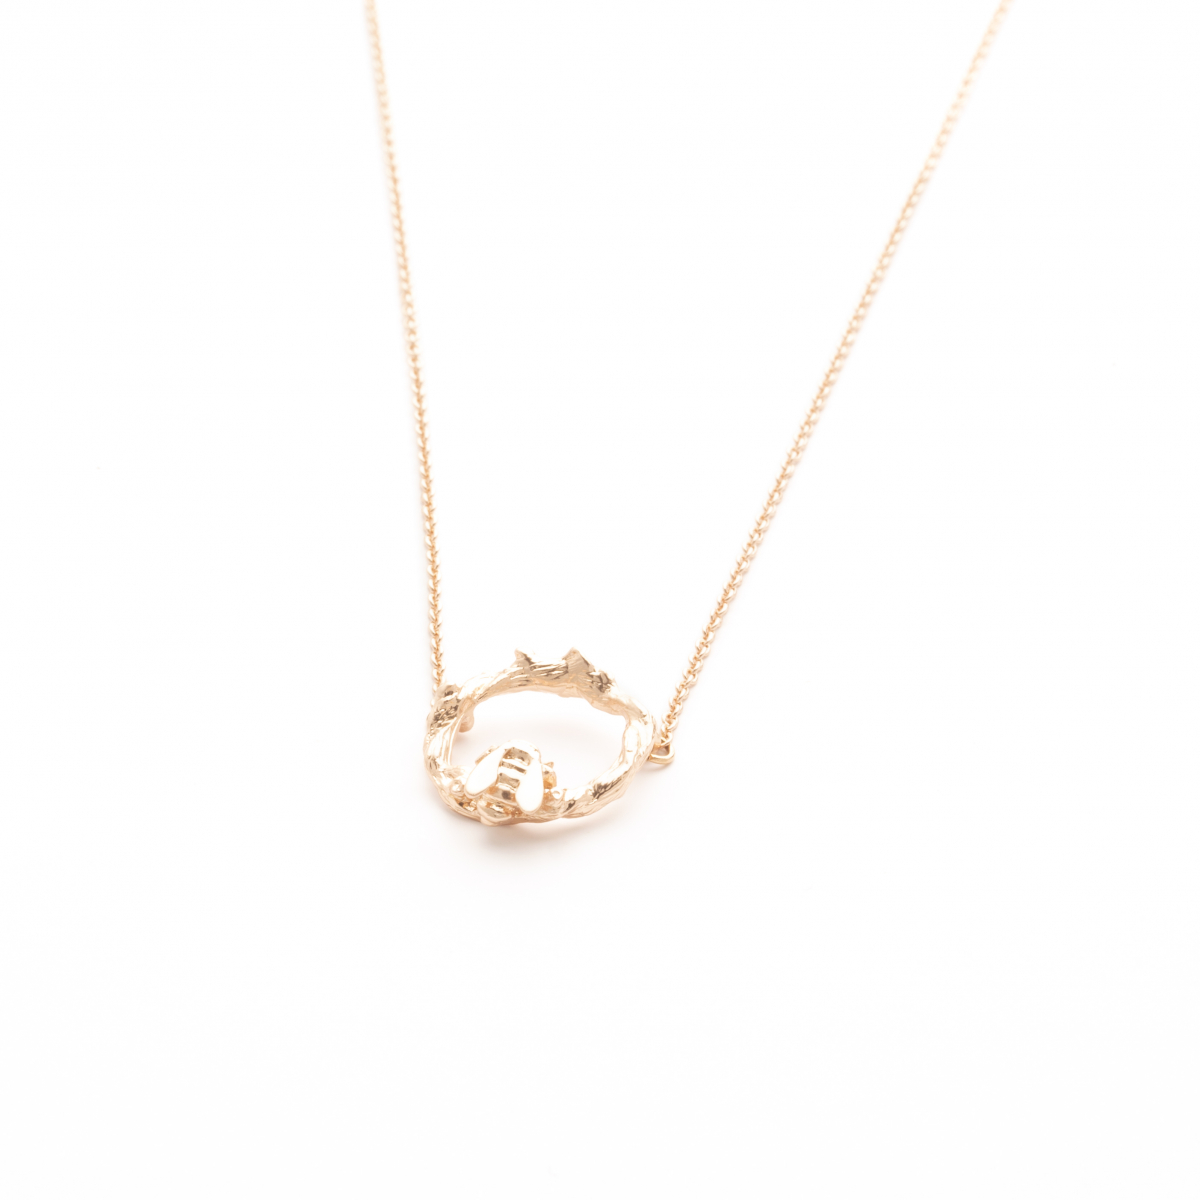 Bee & Floral Hoop Necklace - Rose Gold